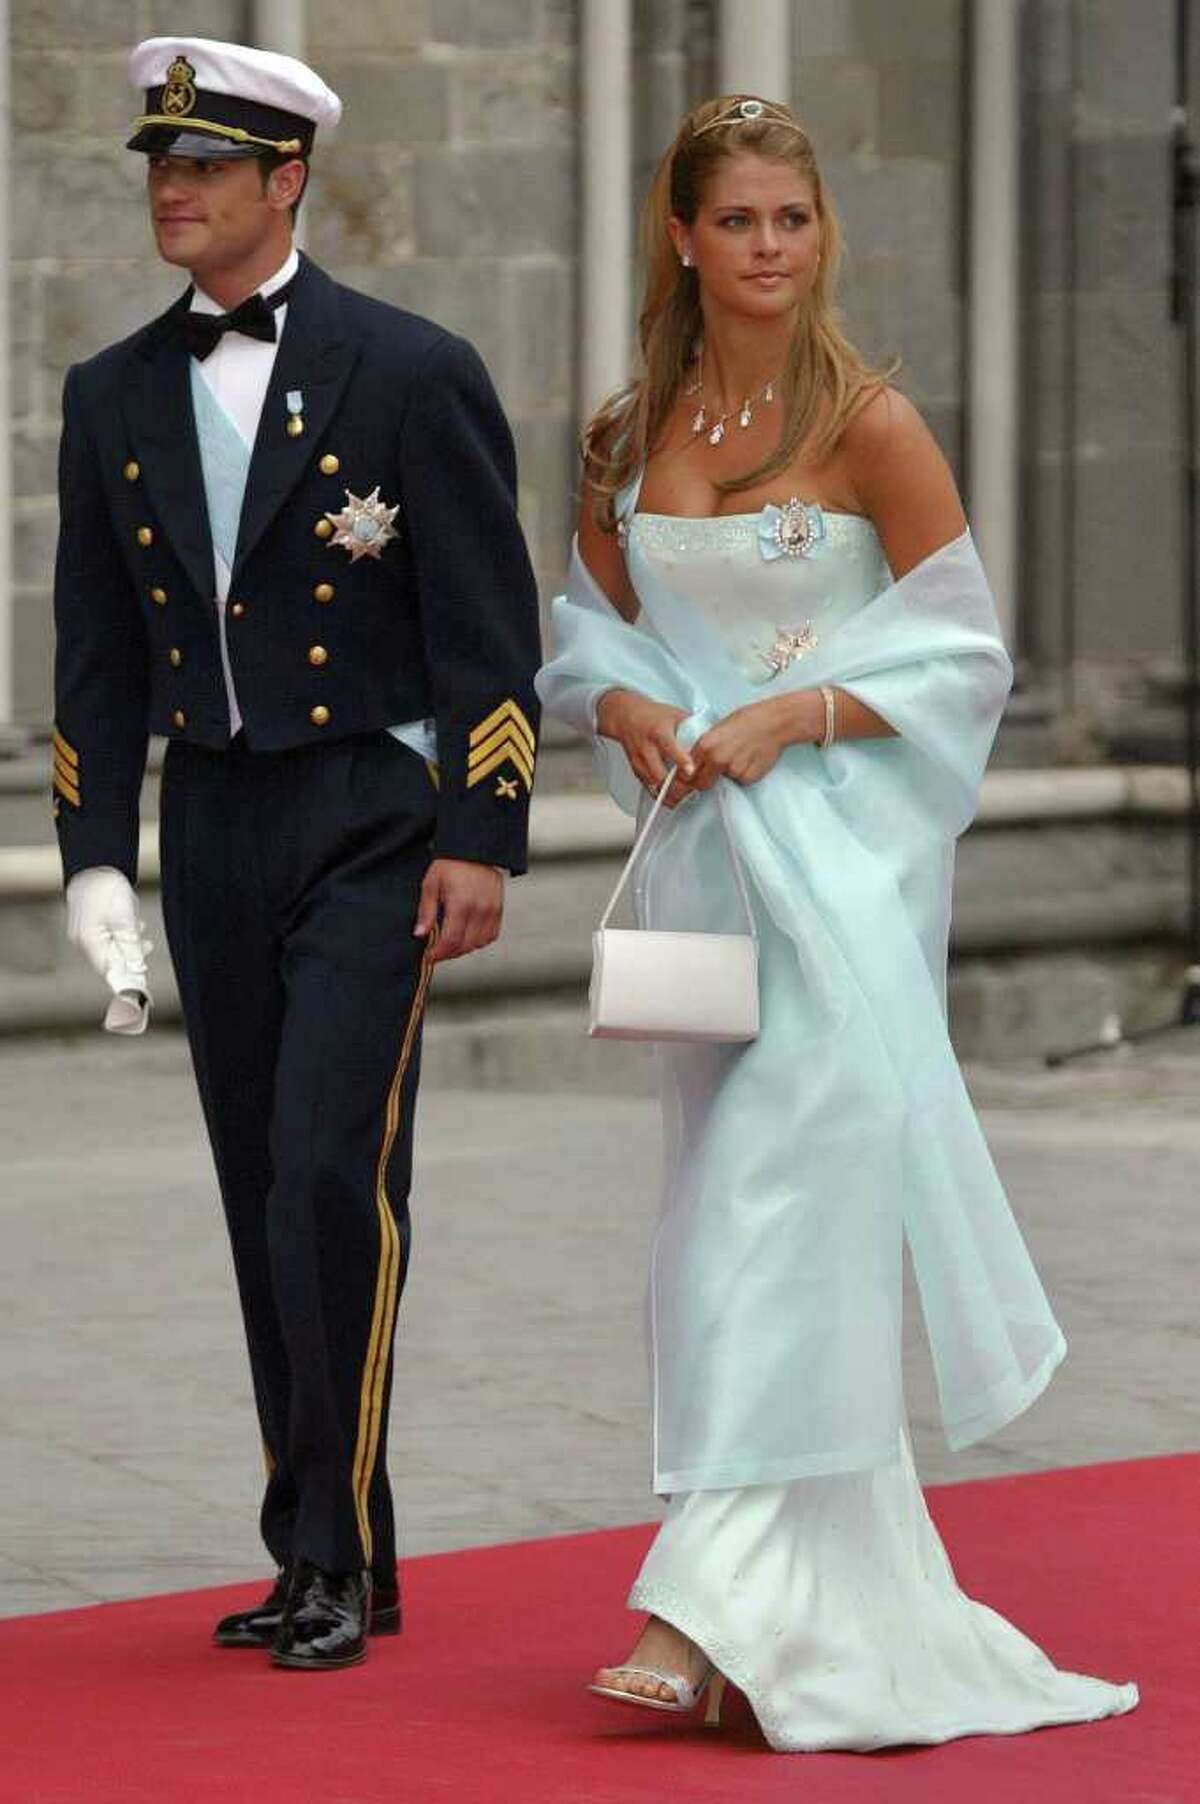 Princess Madeleine and her brother, Prince Carl Phillip, arrive at the wedding ceremony of Princess Martha Louise of Norway and writer Ari Behn at the Nidaros Cathedral May 24, 2002 in Trondheim, Norway.